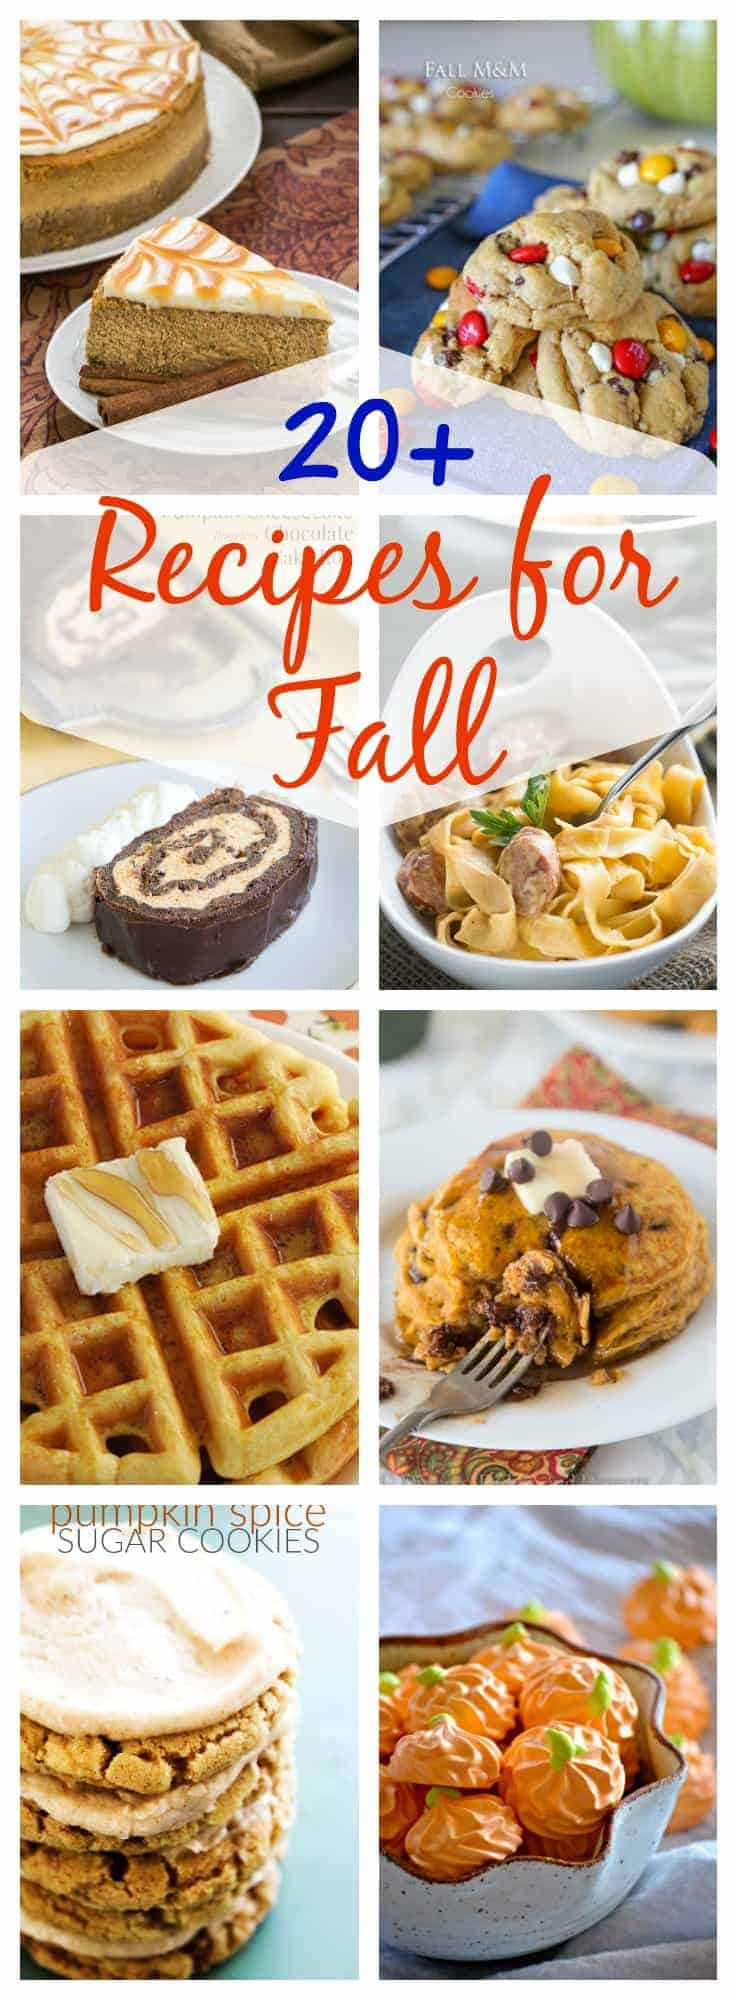 20+ Fall Recipes -- the desserts, breakfasts, soups and main dishes you need to make this fall! Pumpkin, apples, cranberries and more :)